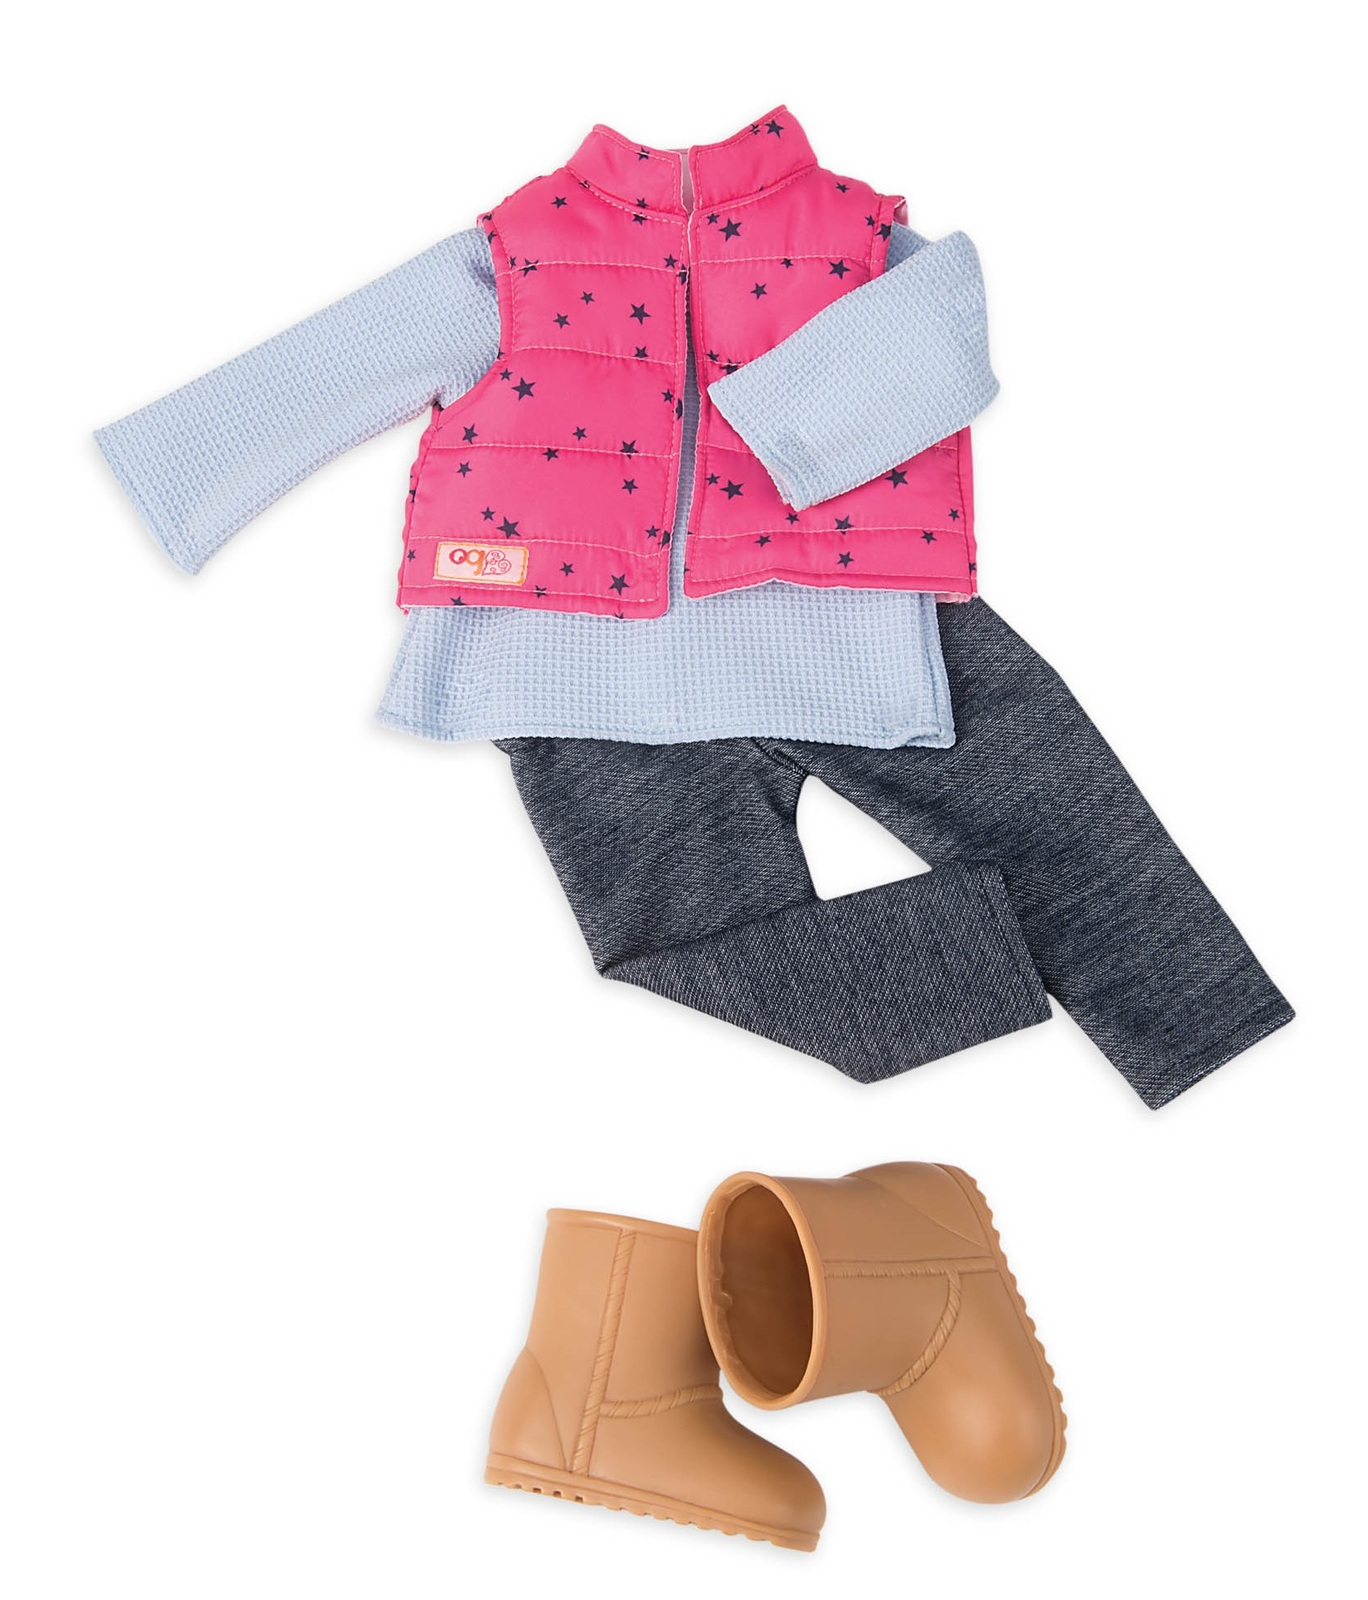 Our Generation: Regular Outfit - Trekking Star Vest with Trousers image